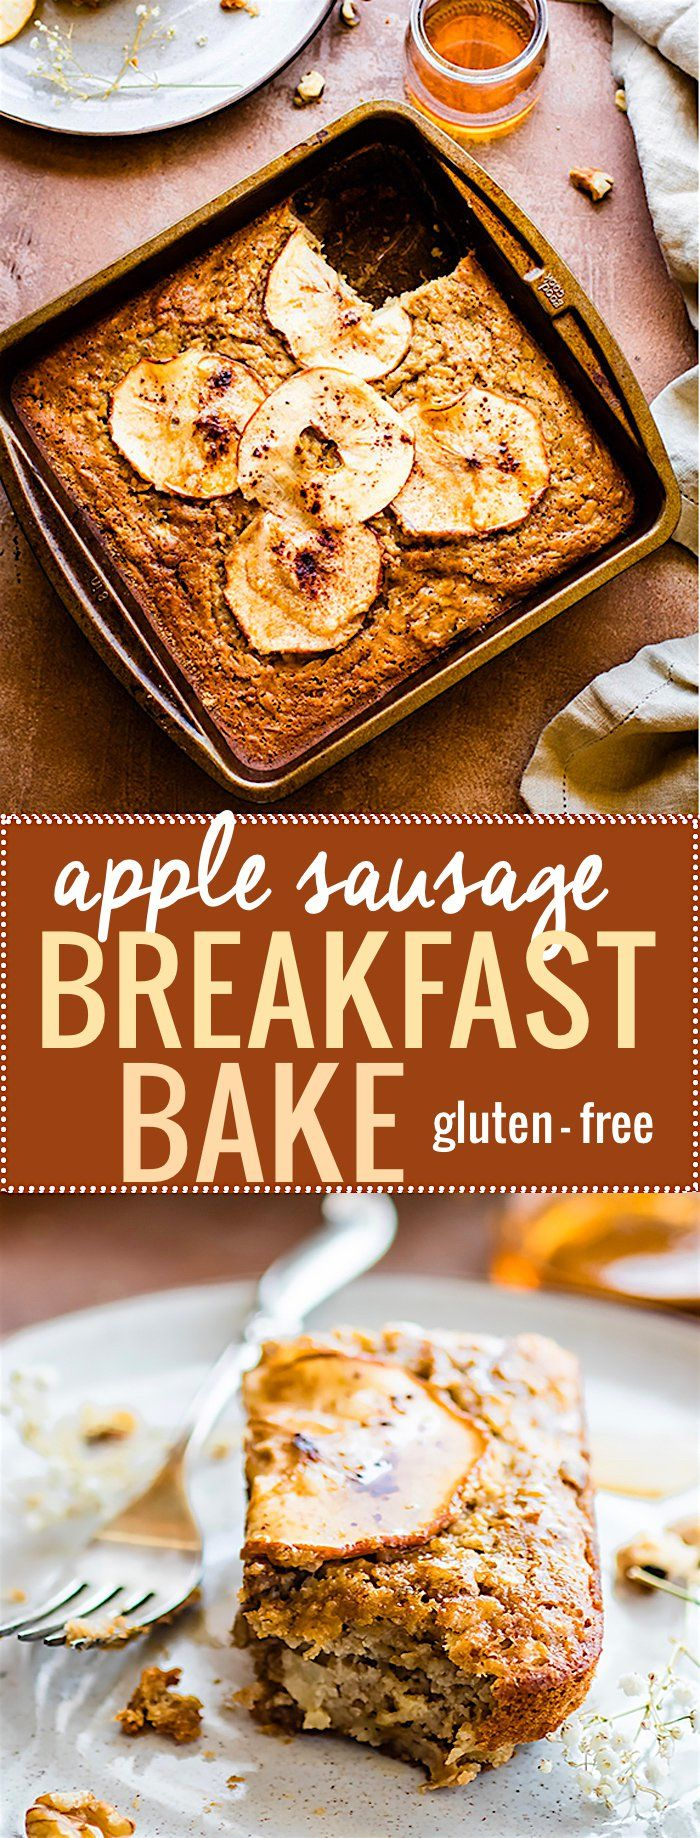 Easy Apple Sausage Breakfast Bake (gluten Free, Healthy)